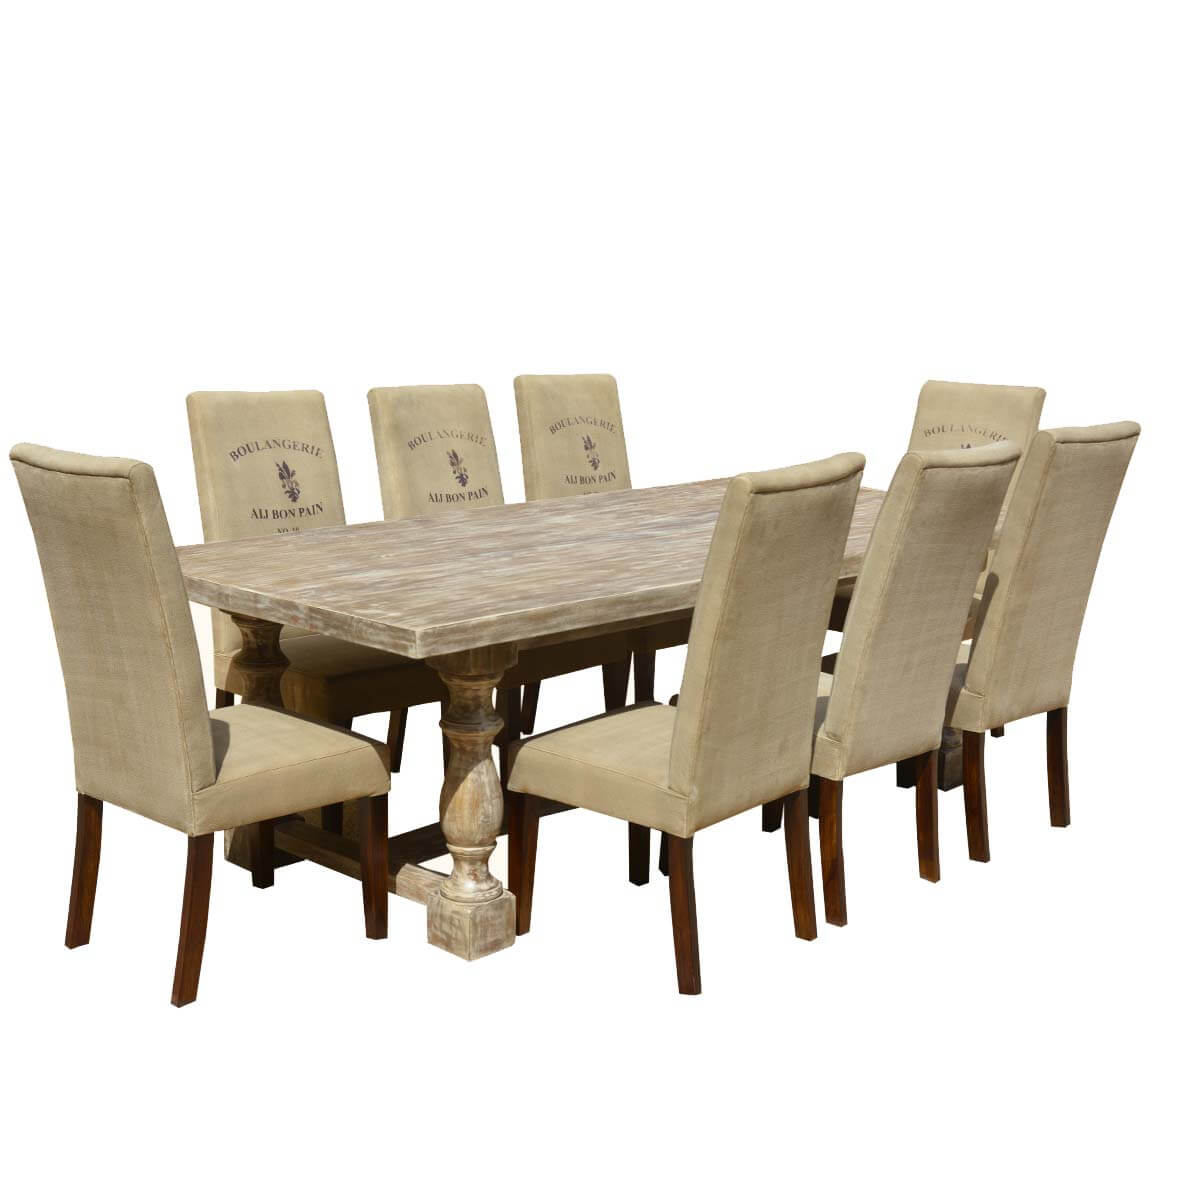 al s chairs and tables blue accent arm chair italian mango wood white dining table cafe logo fabric hover to zoom